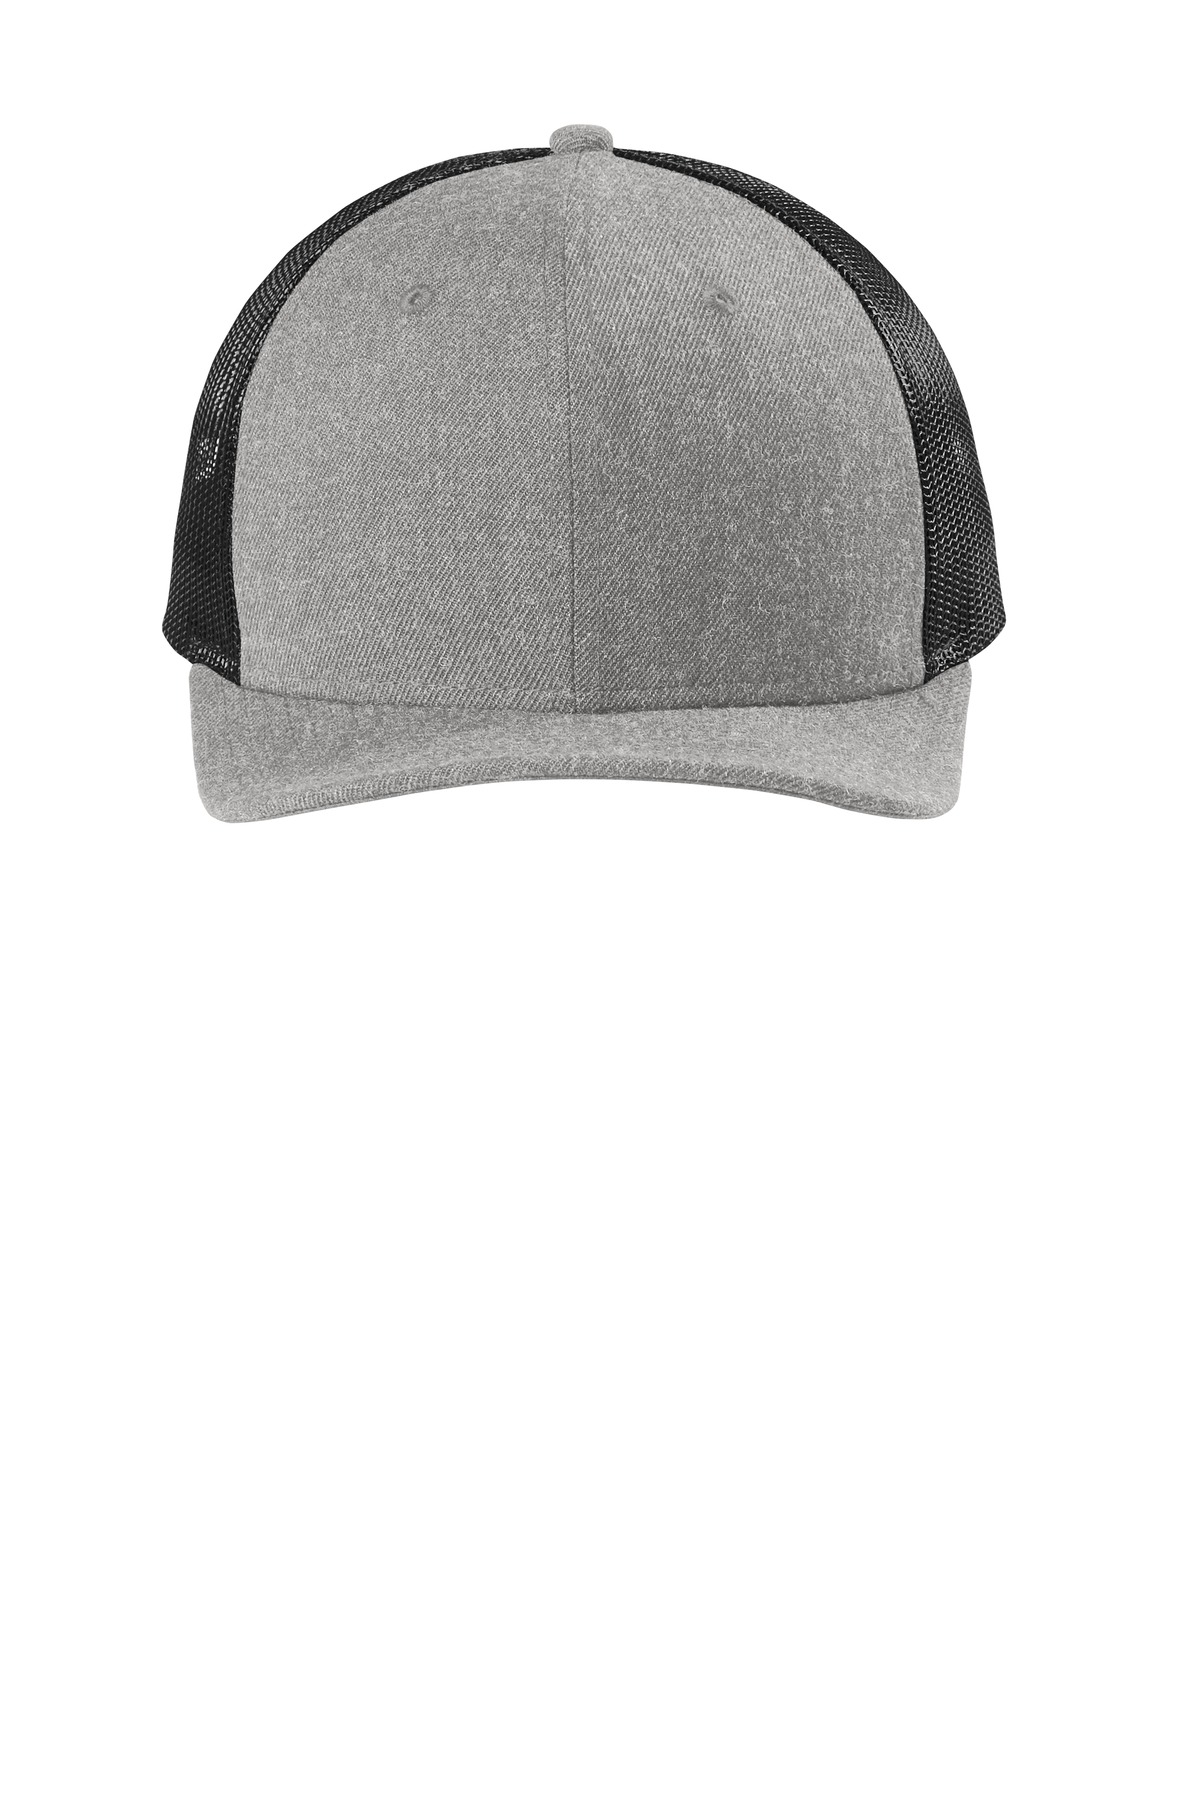 New Era  ®   Snapback Low Profile Trucker Cap   NE207 - Heather Grey/ Black